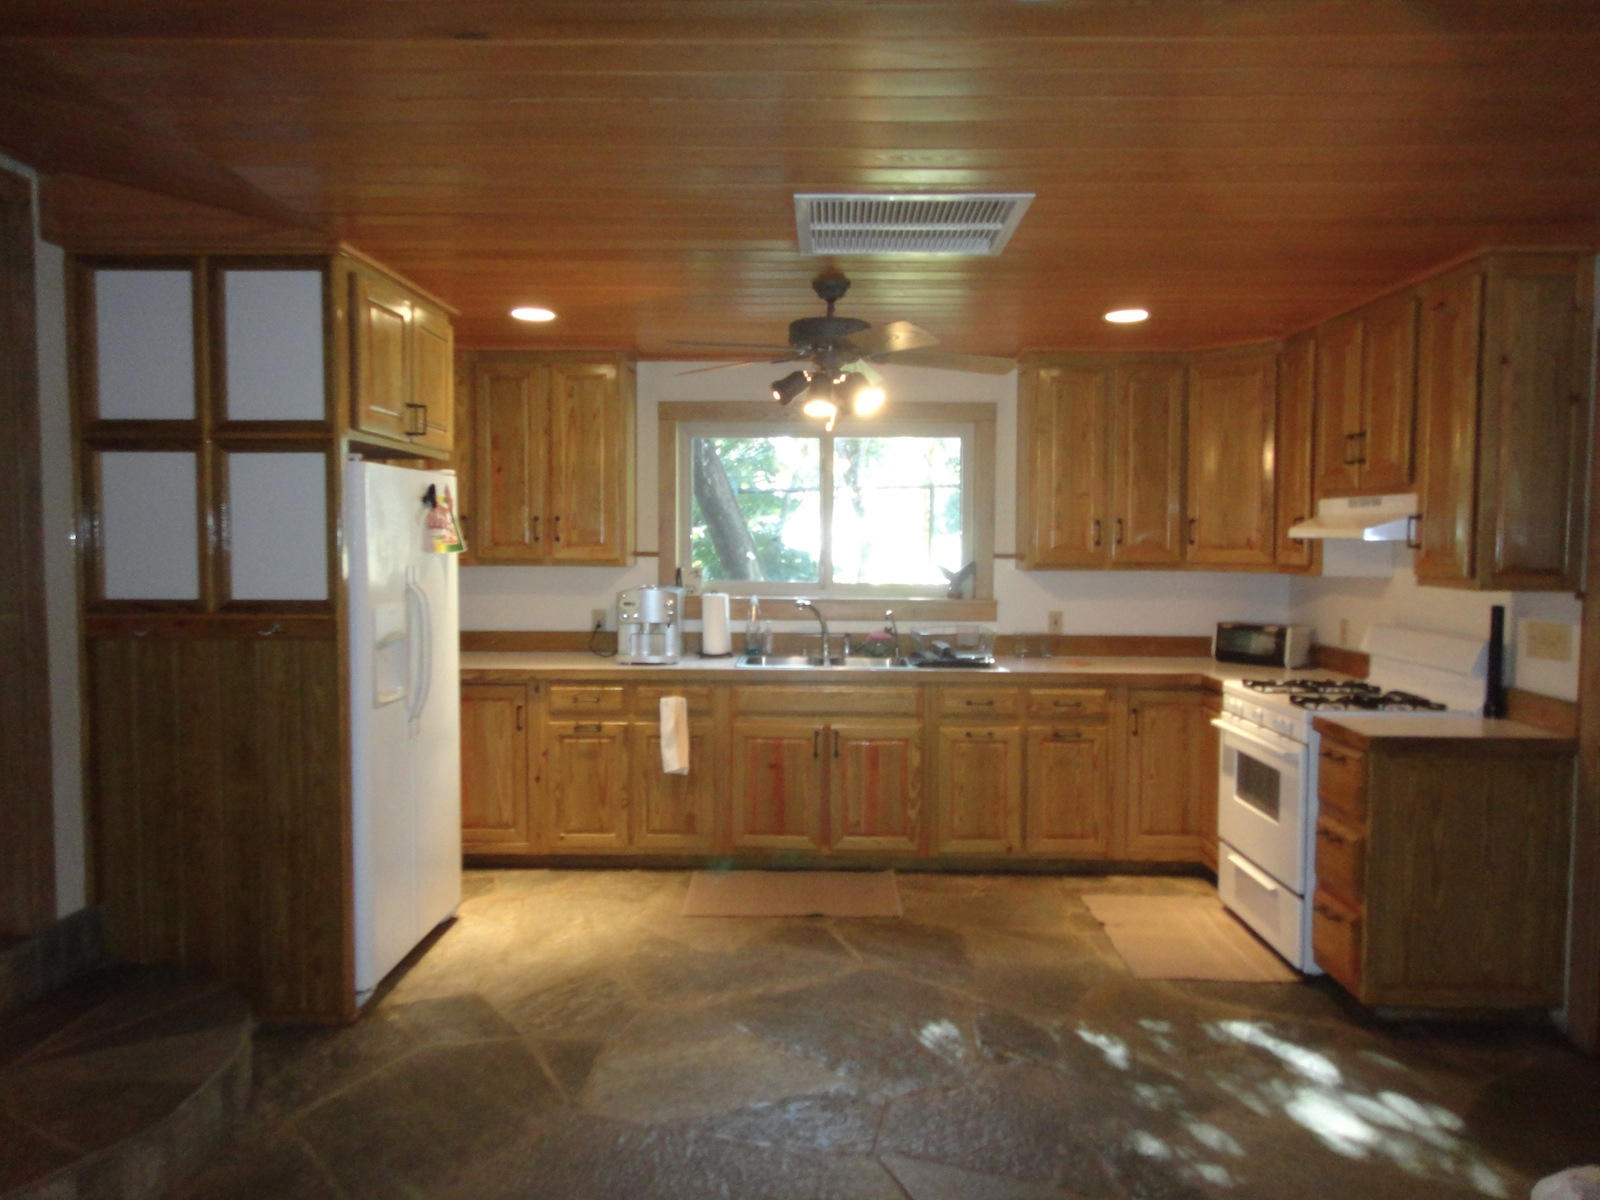 Gate House/family office kitchen